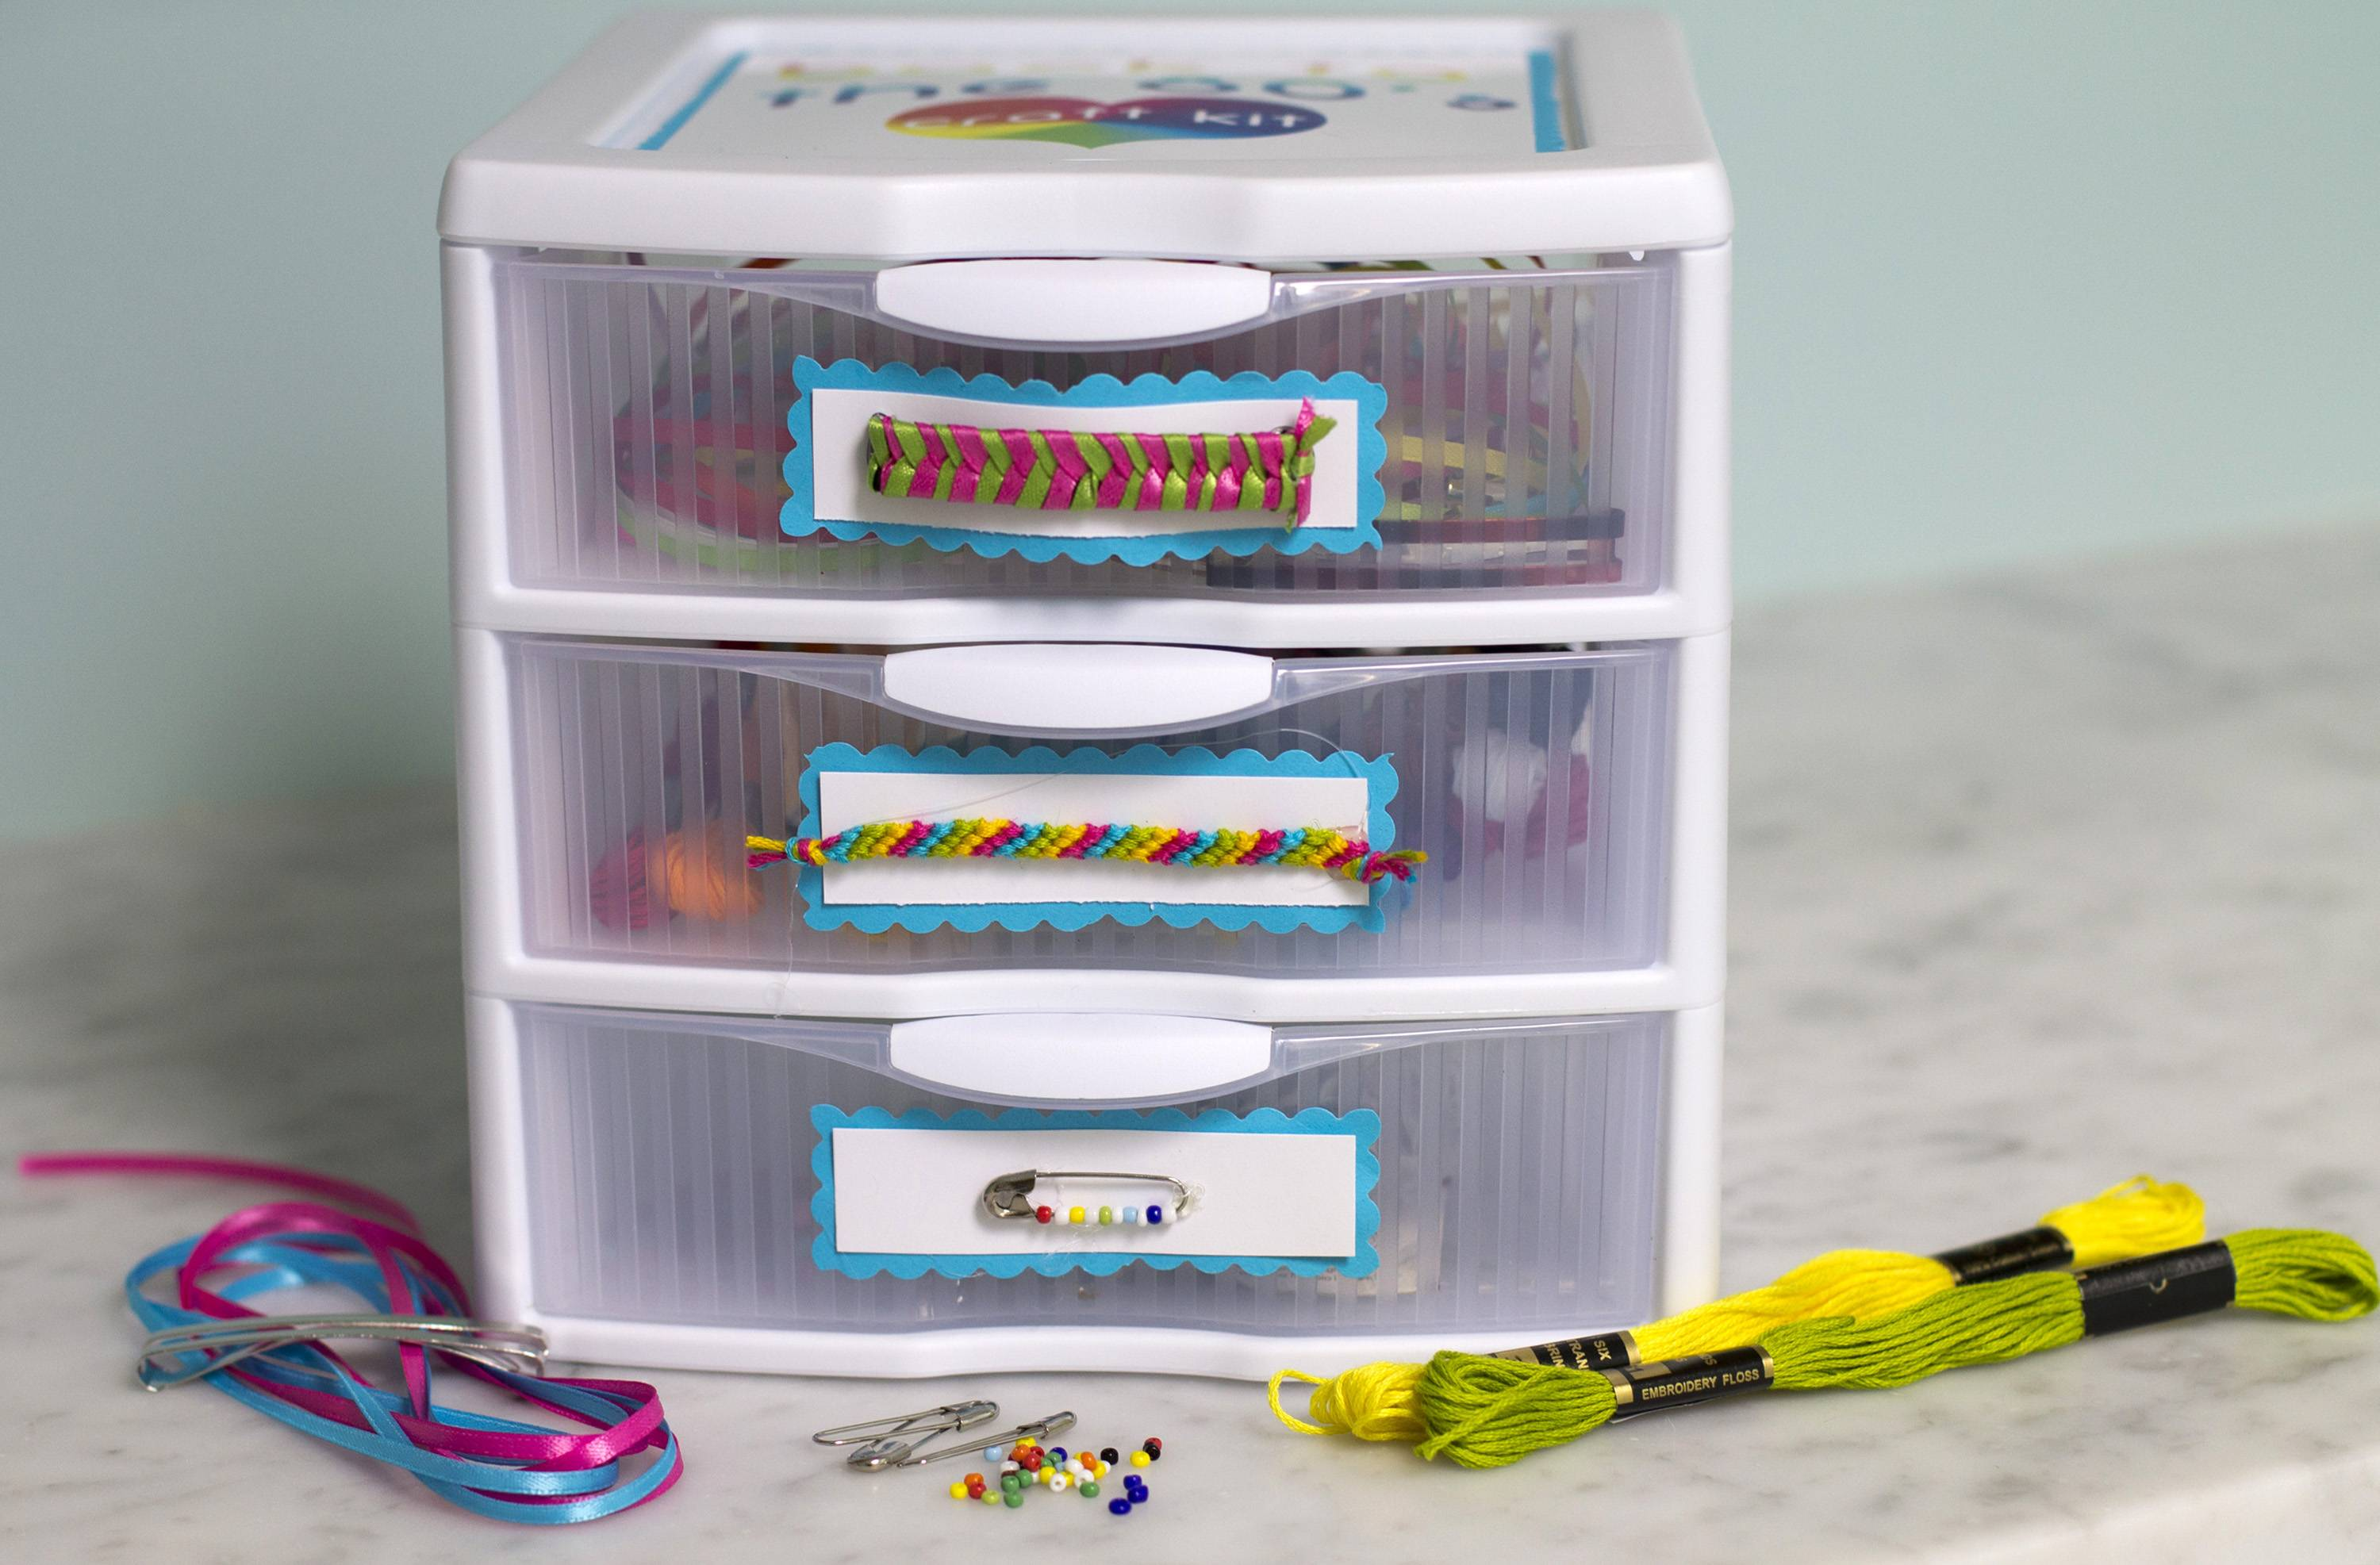 Make your own '80s kit to make ribbon barrettes, friendship bracelets and friendship pins.